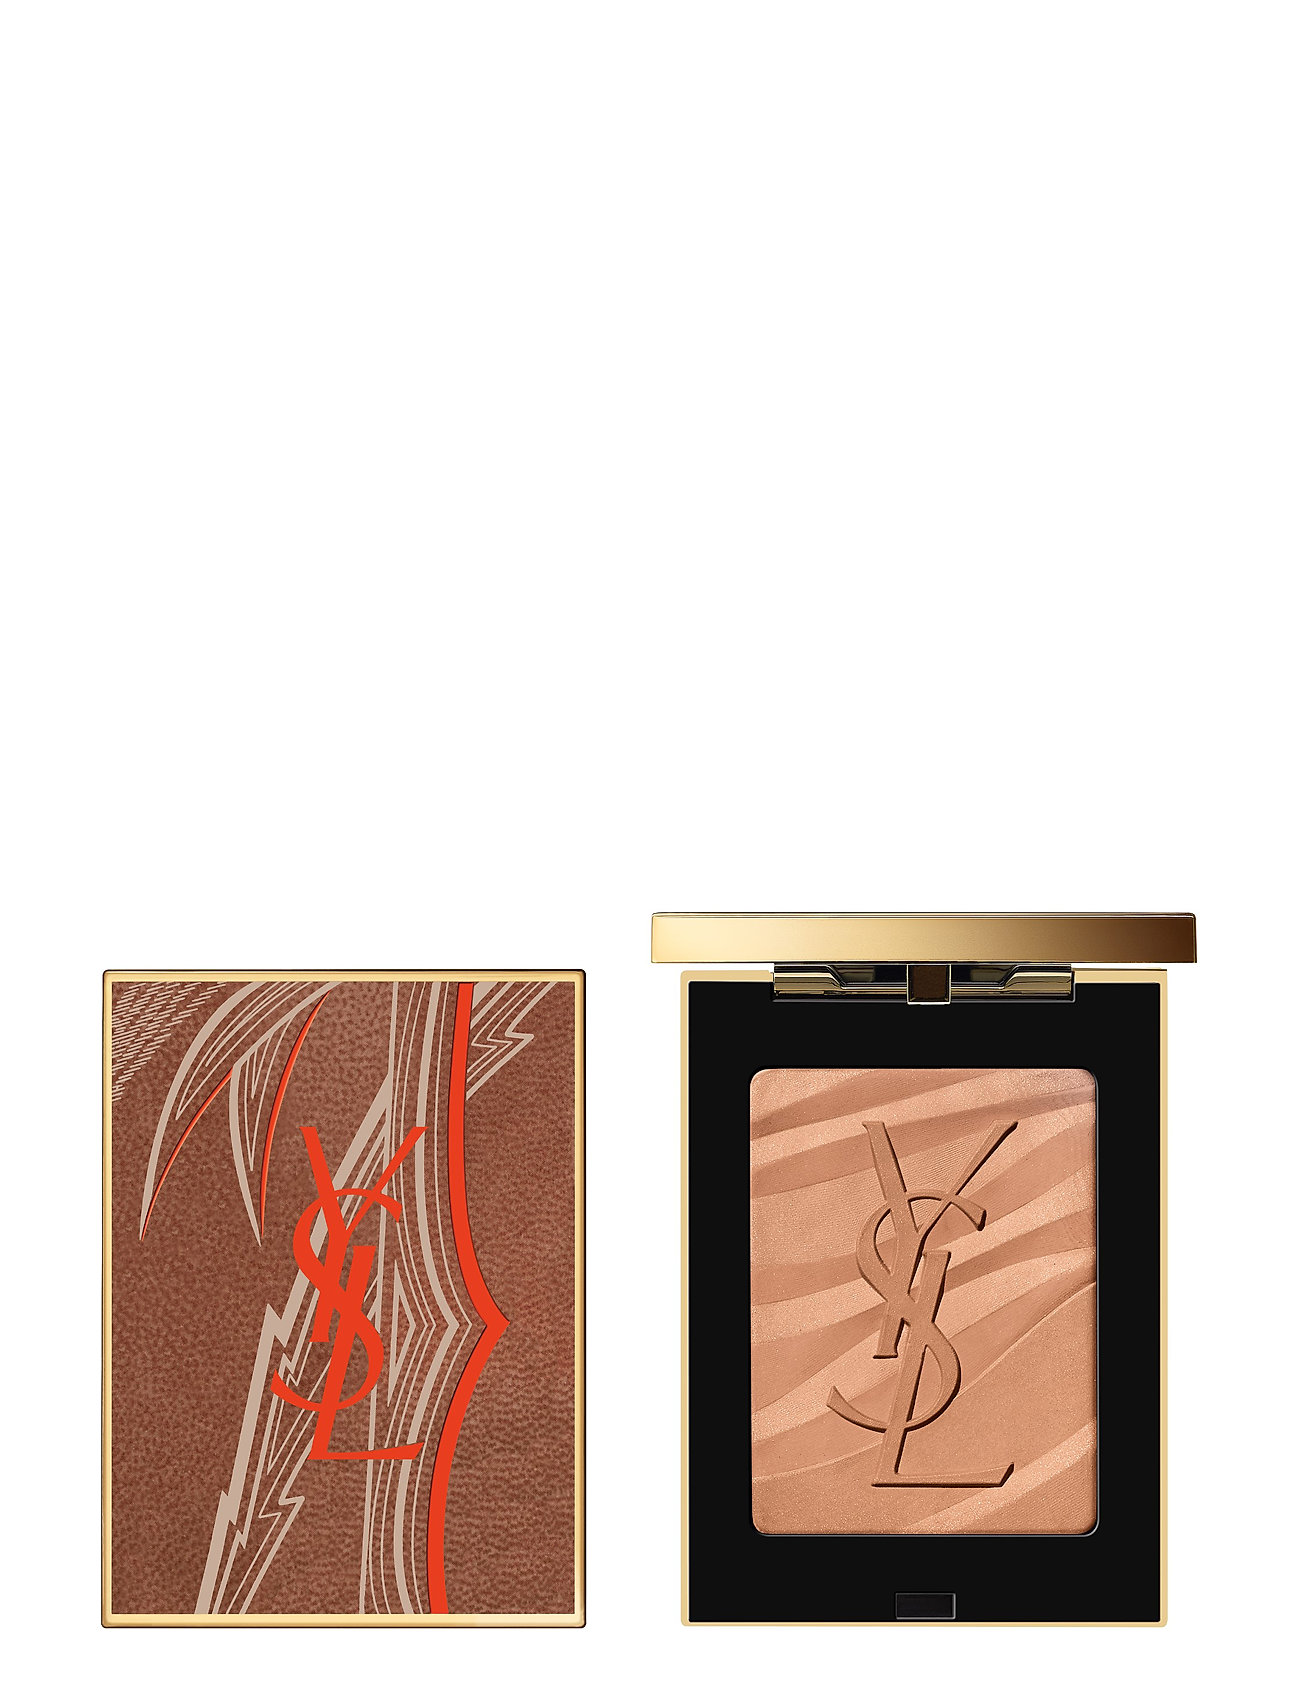 Yves Saint Laurent Bronzing Stone Light Sum19 Os - LIGHT